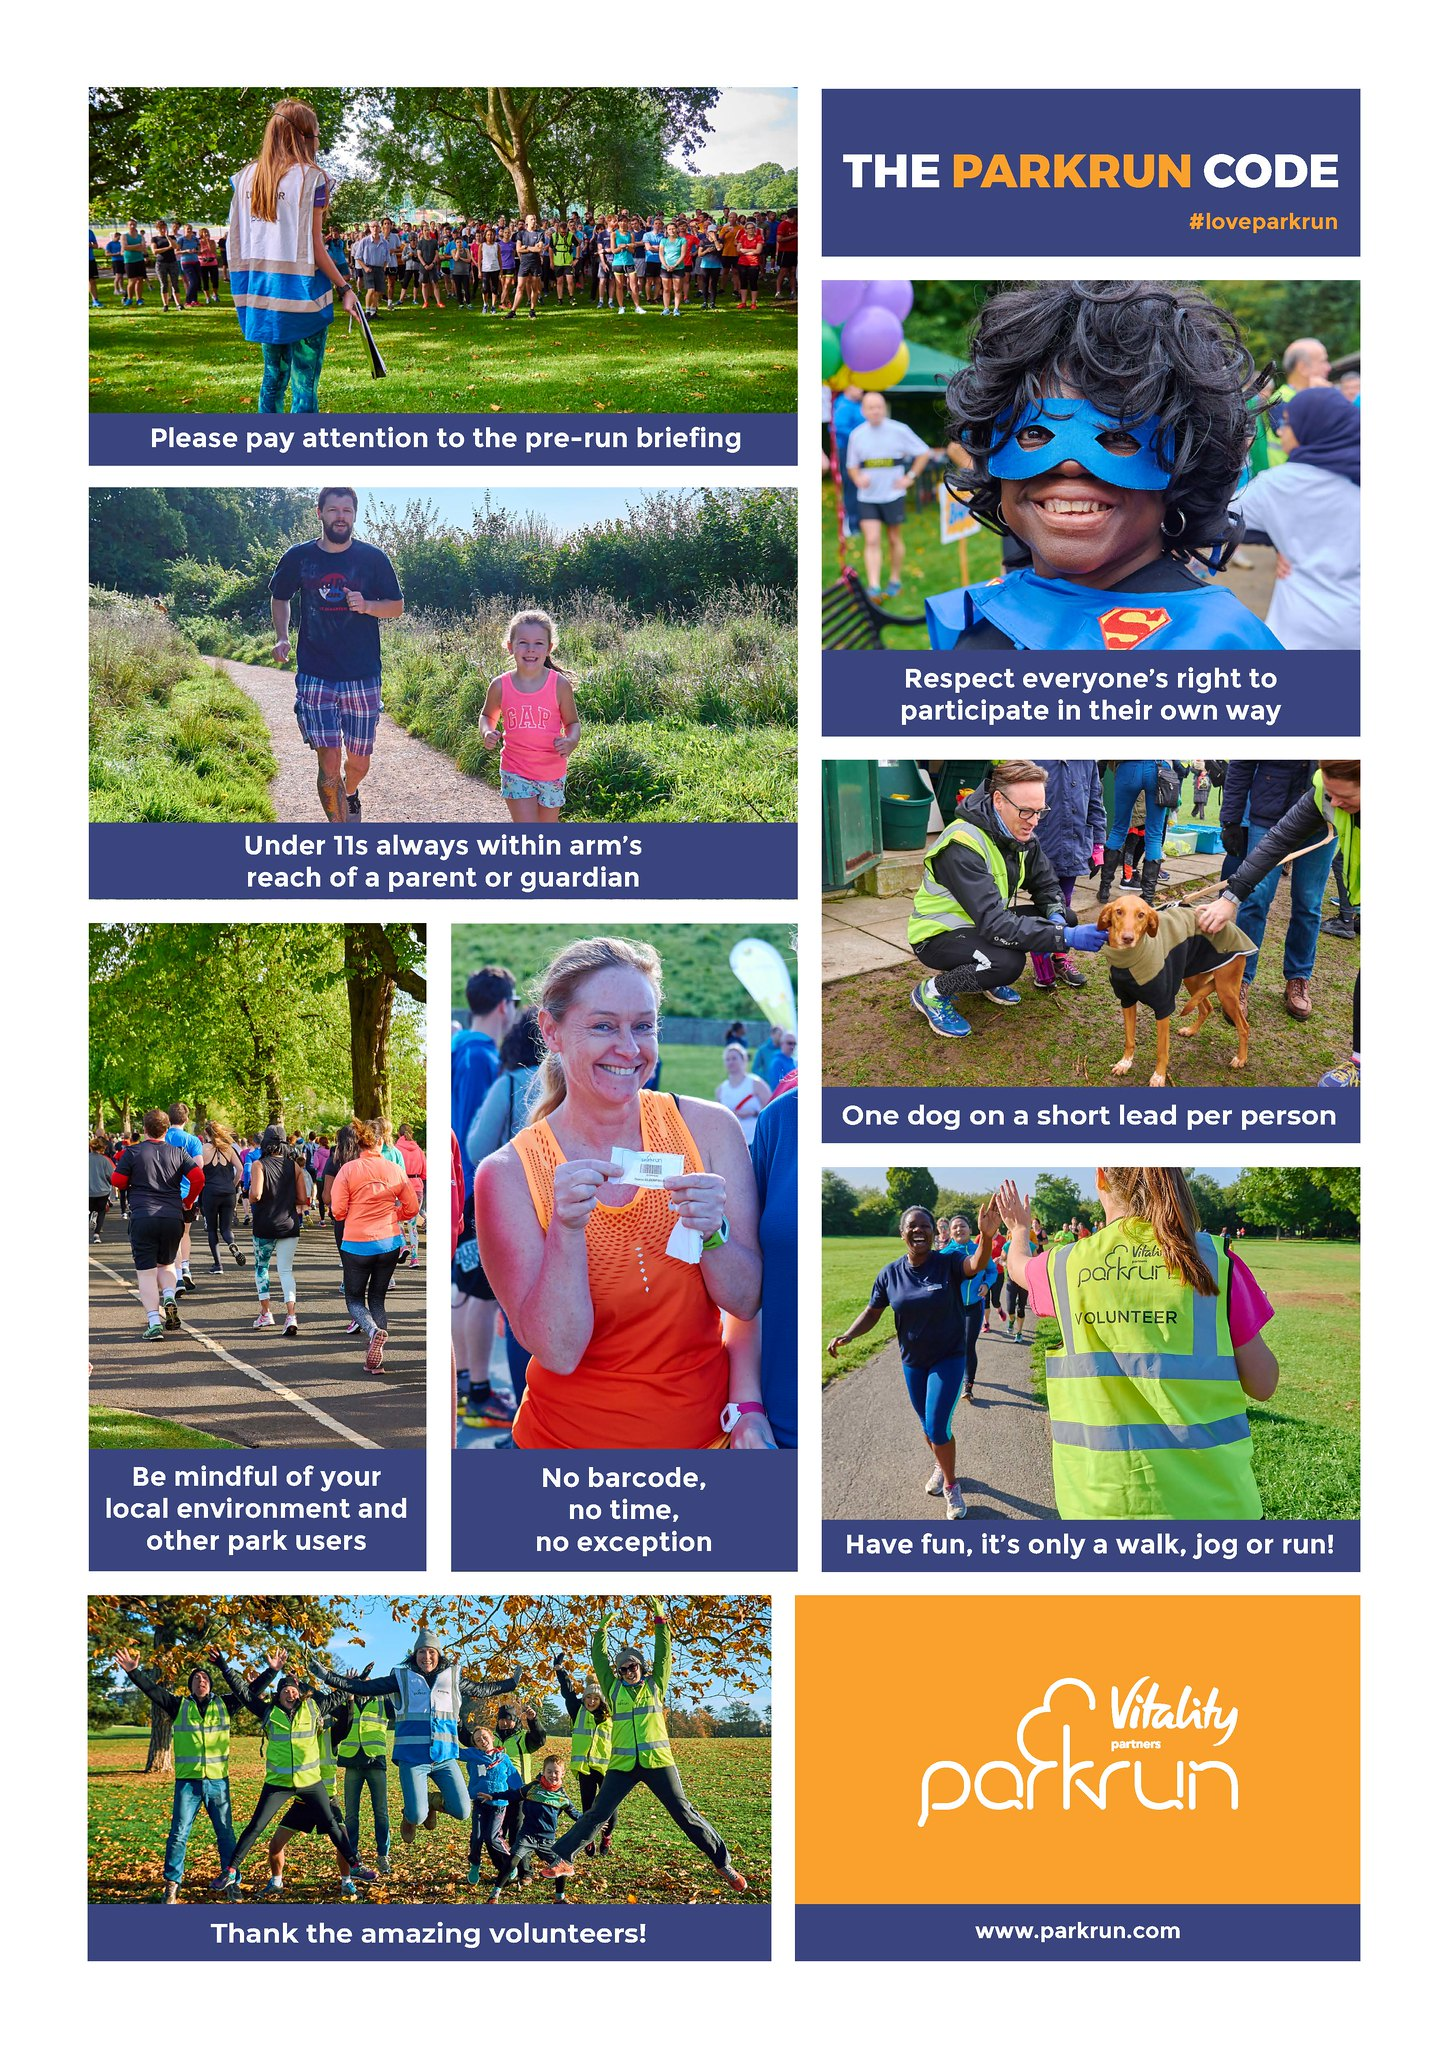 The parkrun Code image